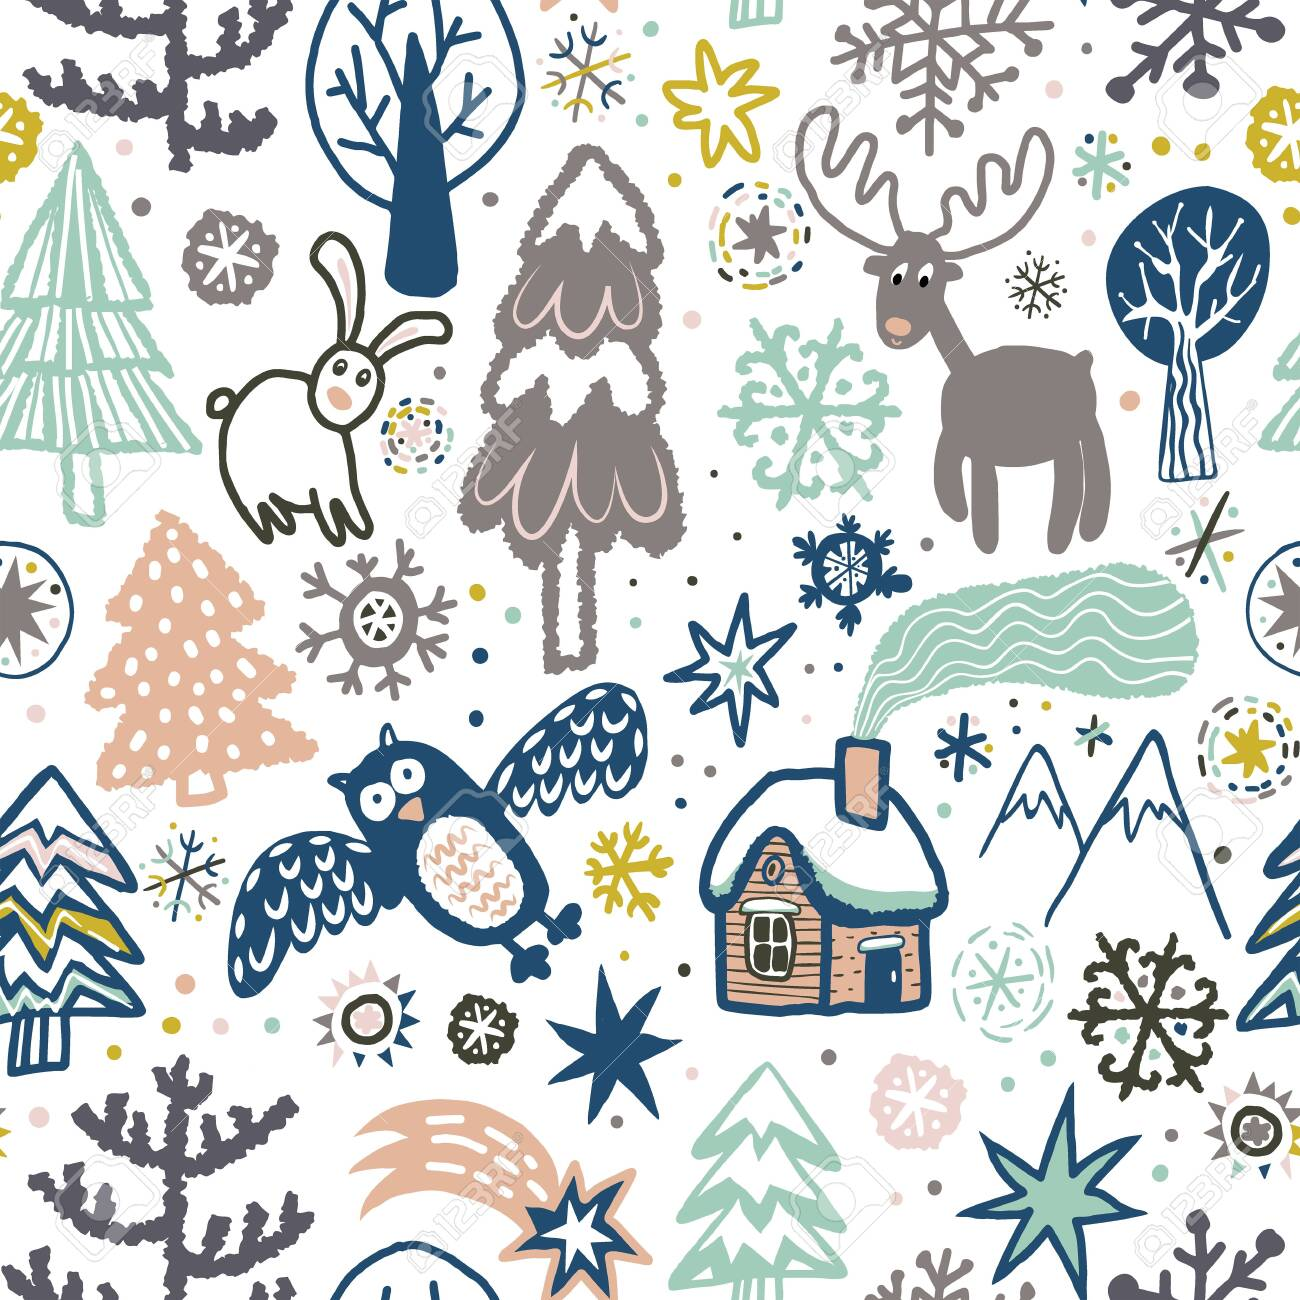 Vector cute pattern with forest animals and birds. - 134840062